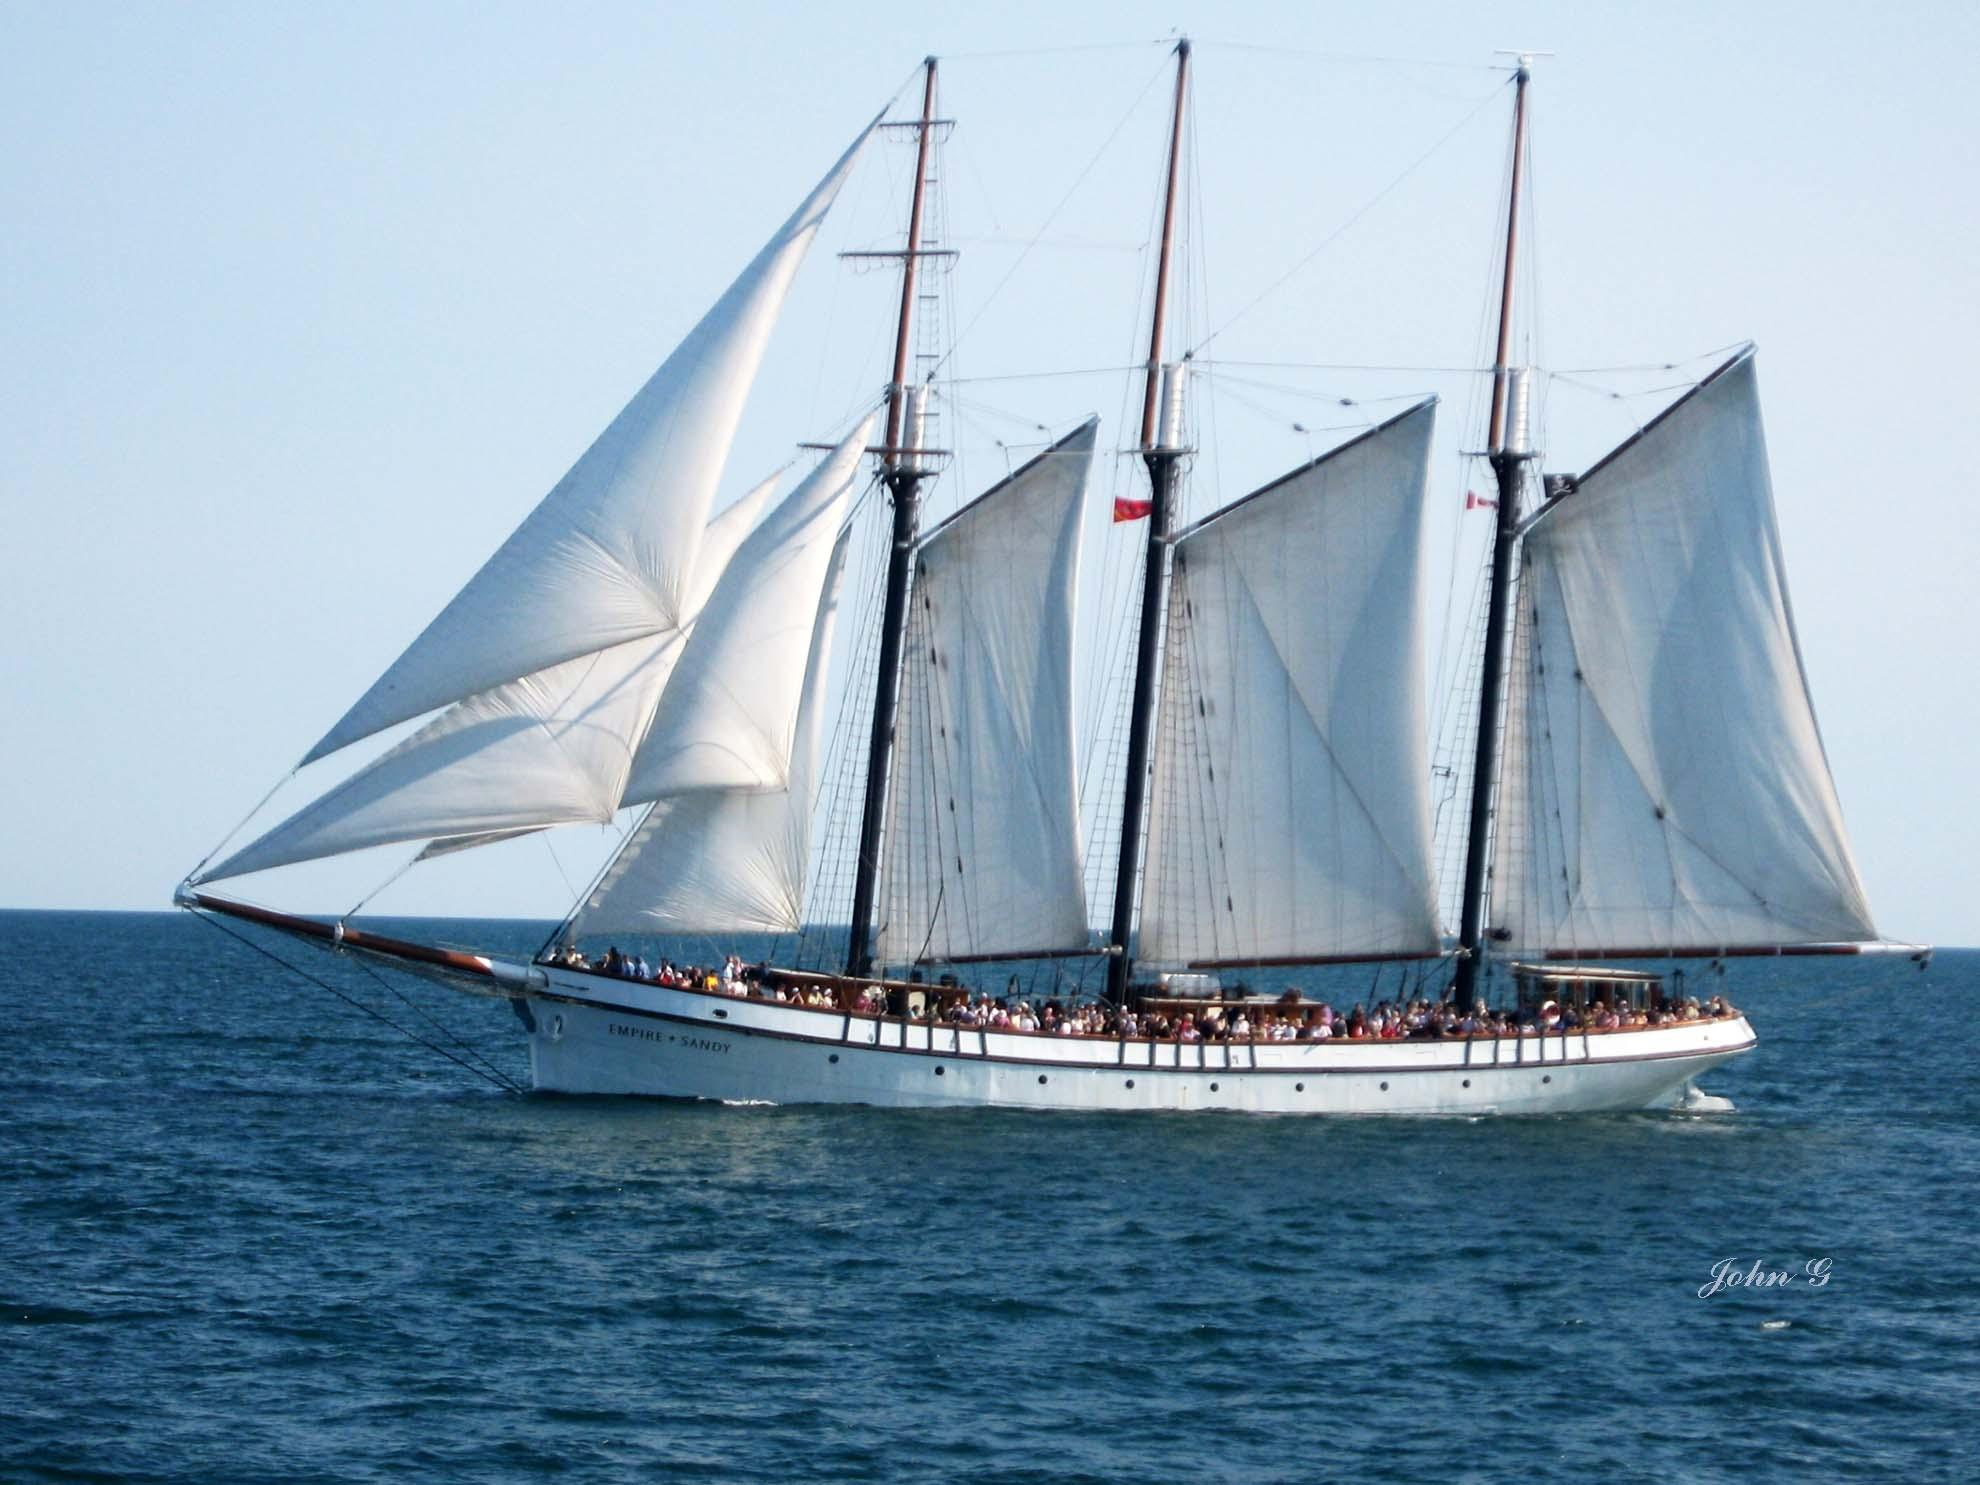 Canada S Largest Sailing Tall Ship To Visit Buffalo Wbfo